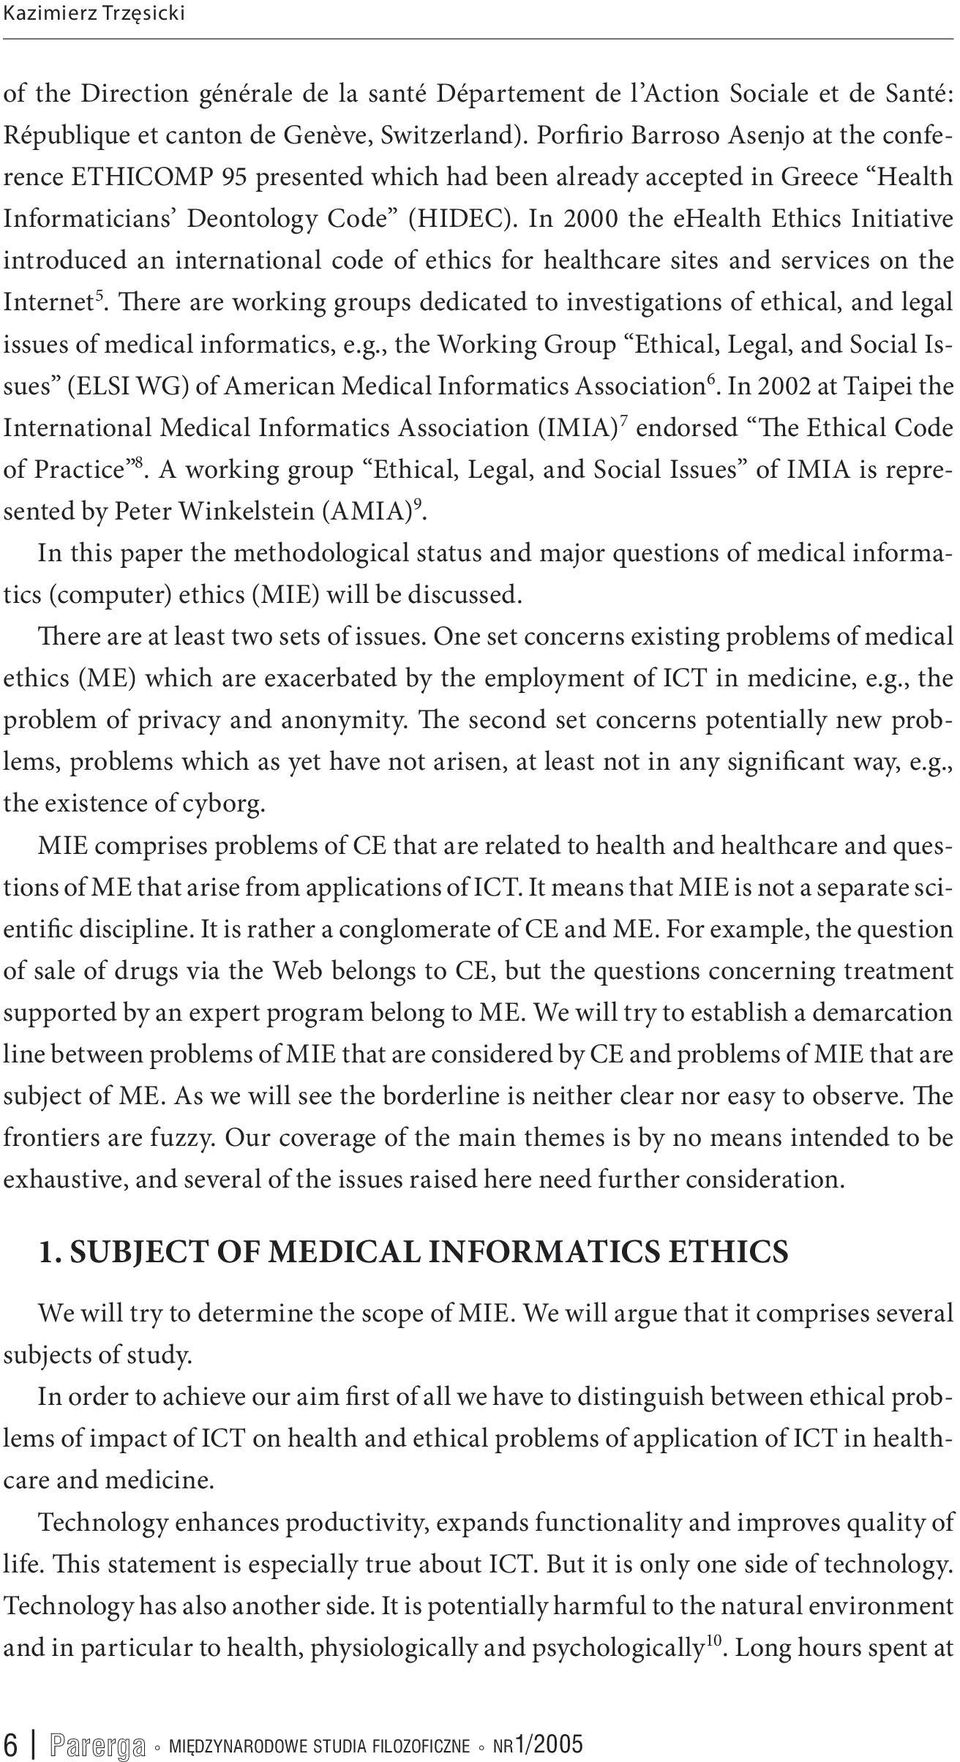 In 2000 the ehealth Ethics Initiative introduced an international code of ethics for healthcare sites and services on the Internet 5.